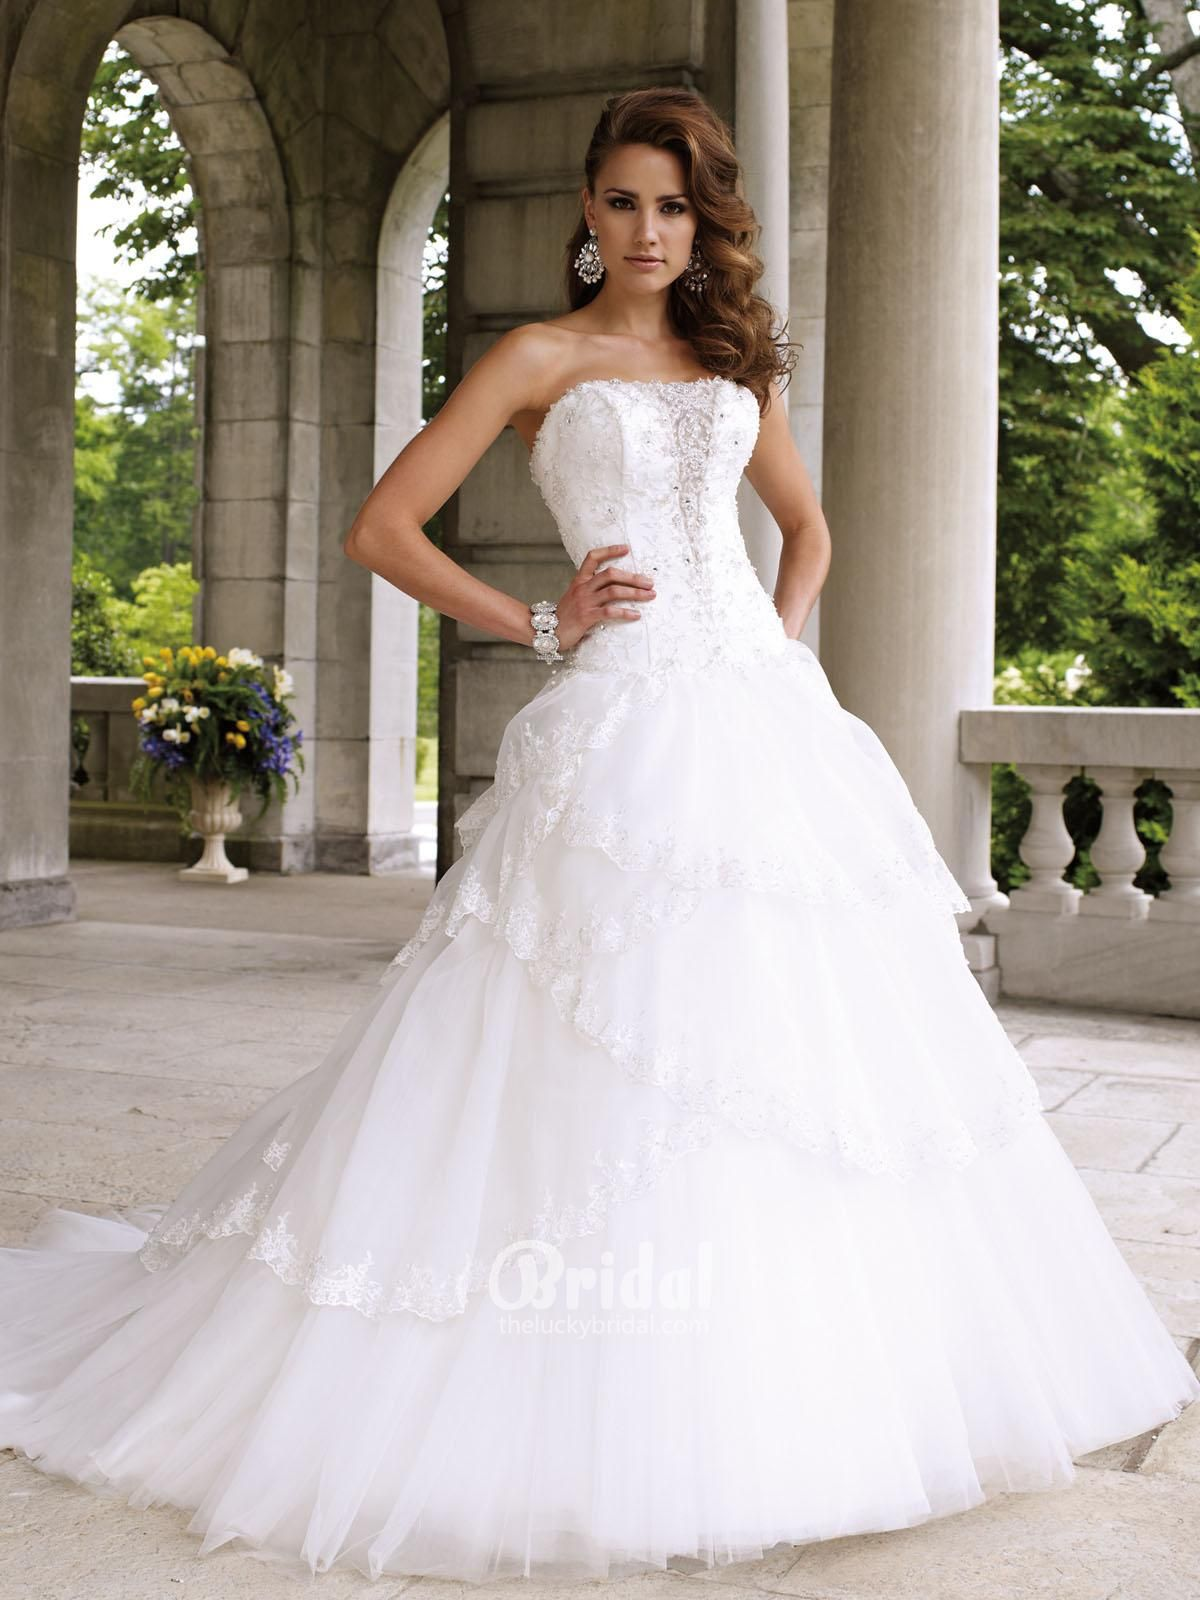 Collection Strapless Ball Gown Wedding Dresses Pictures - Weddings Pro